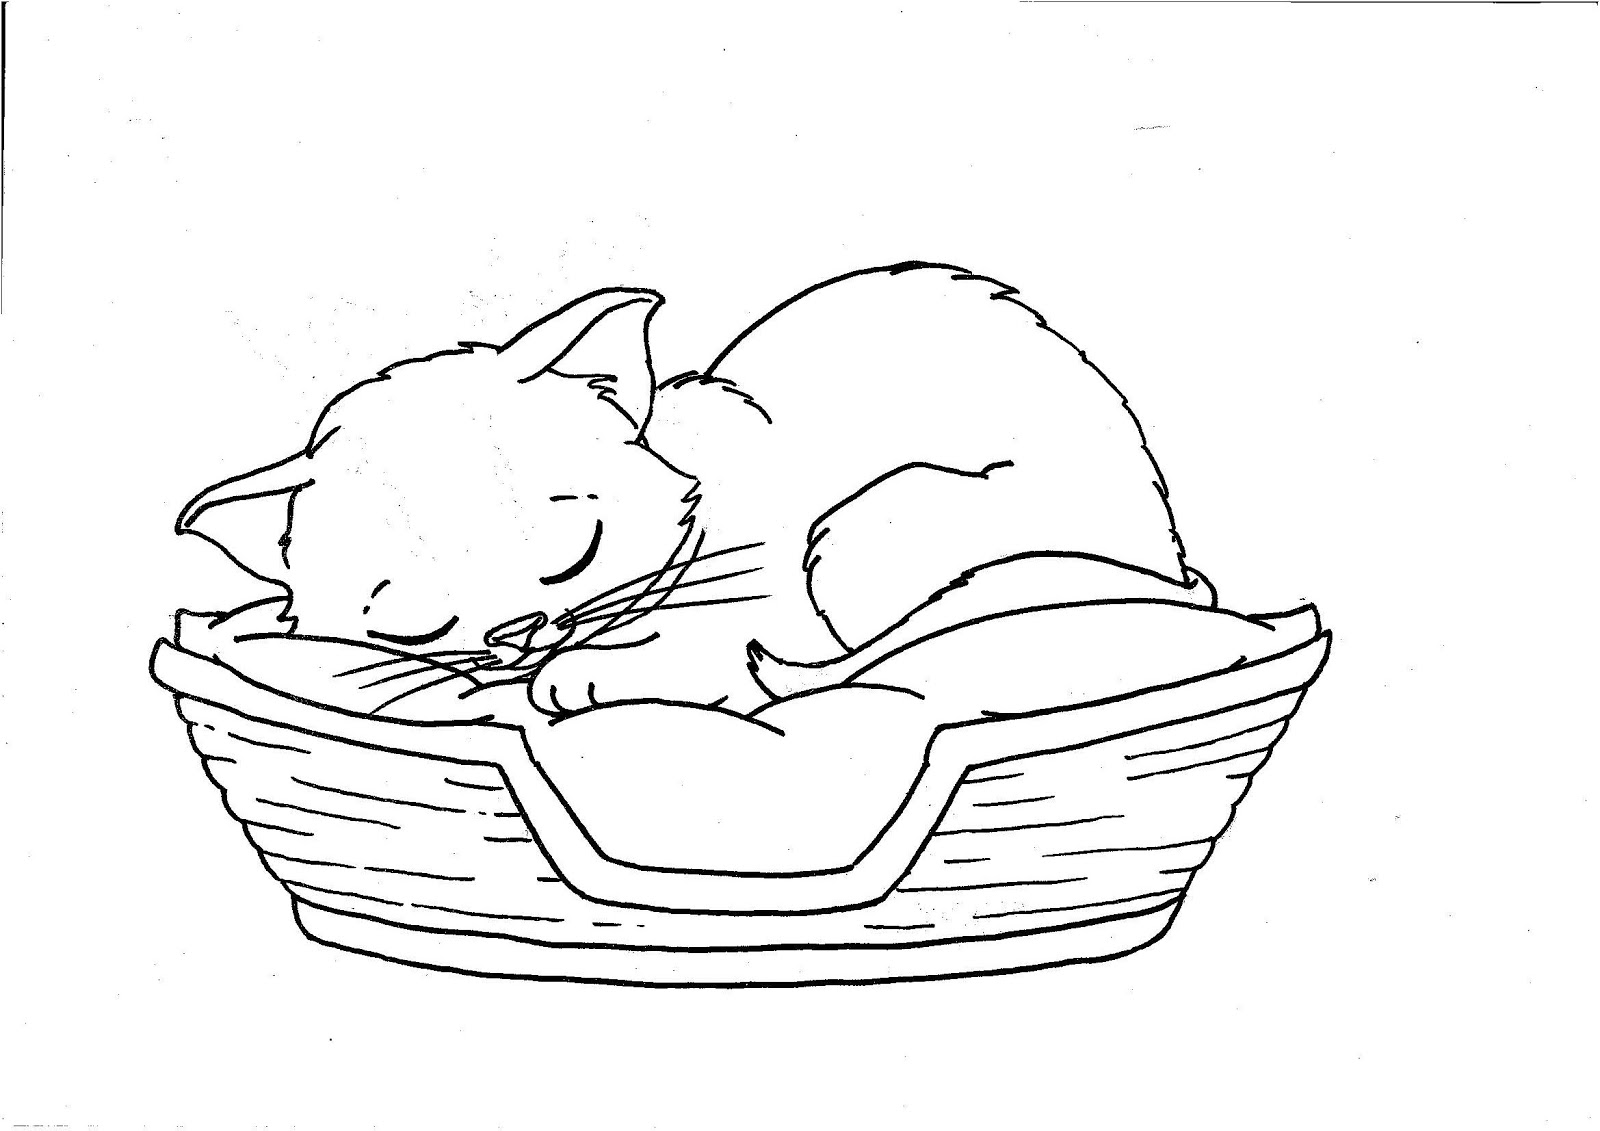 Cute Kitten Coloring Page Free Printable Coloring Pages Coloring